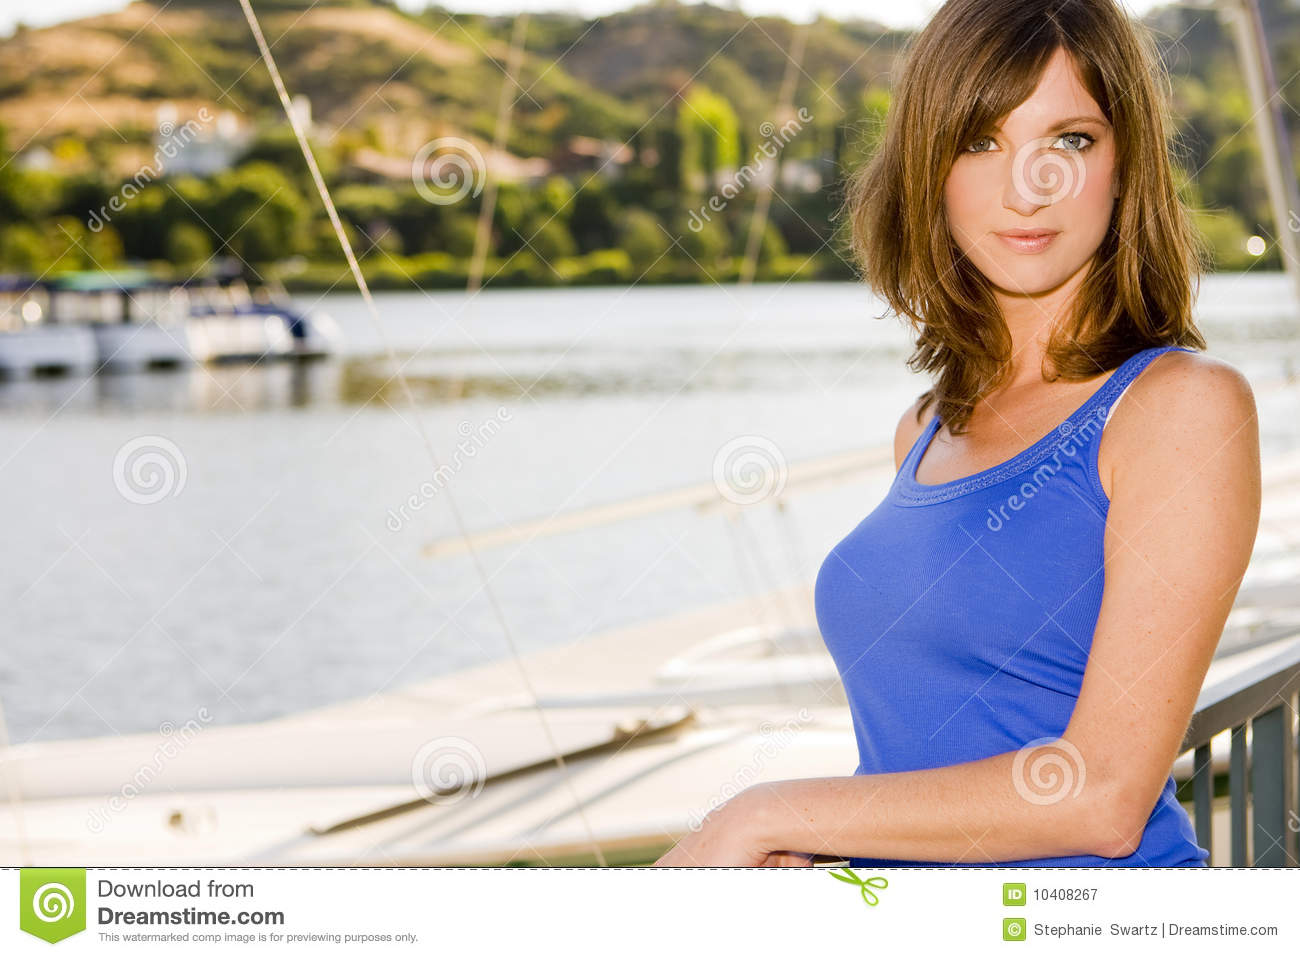 lake harbor women 1000s of lake harbor women dating personals signup free and start meeting local lake harbor women on bookofmatchescom™.